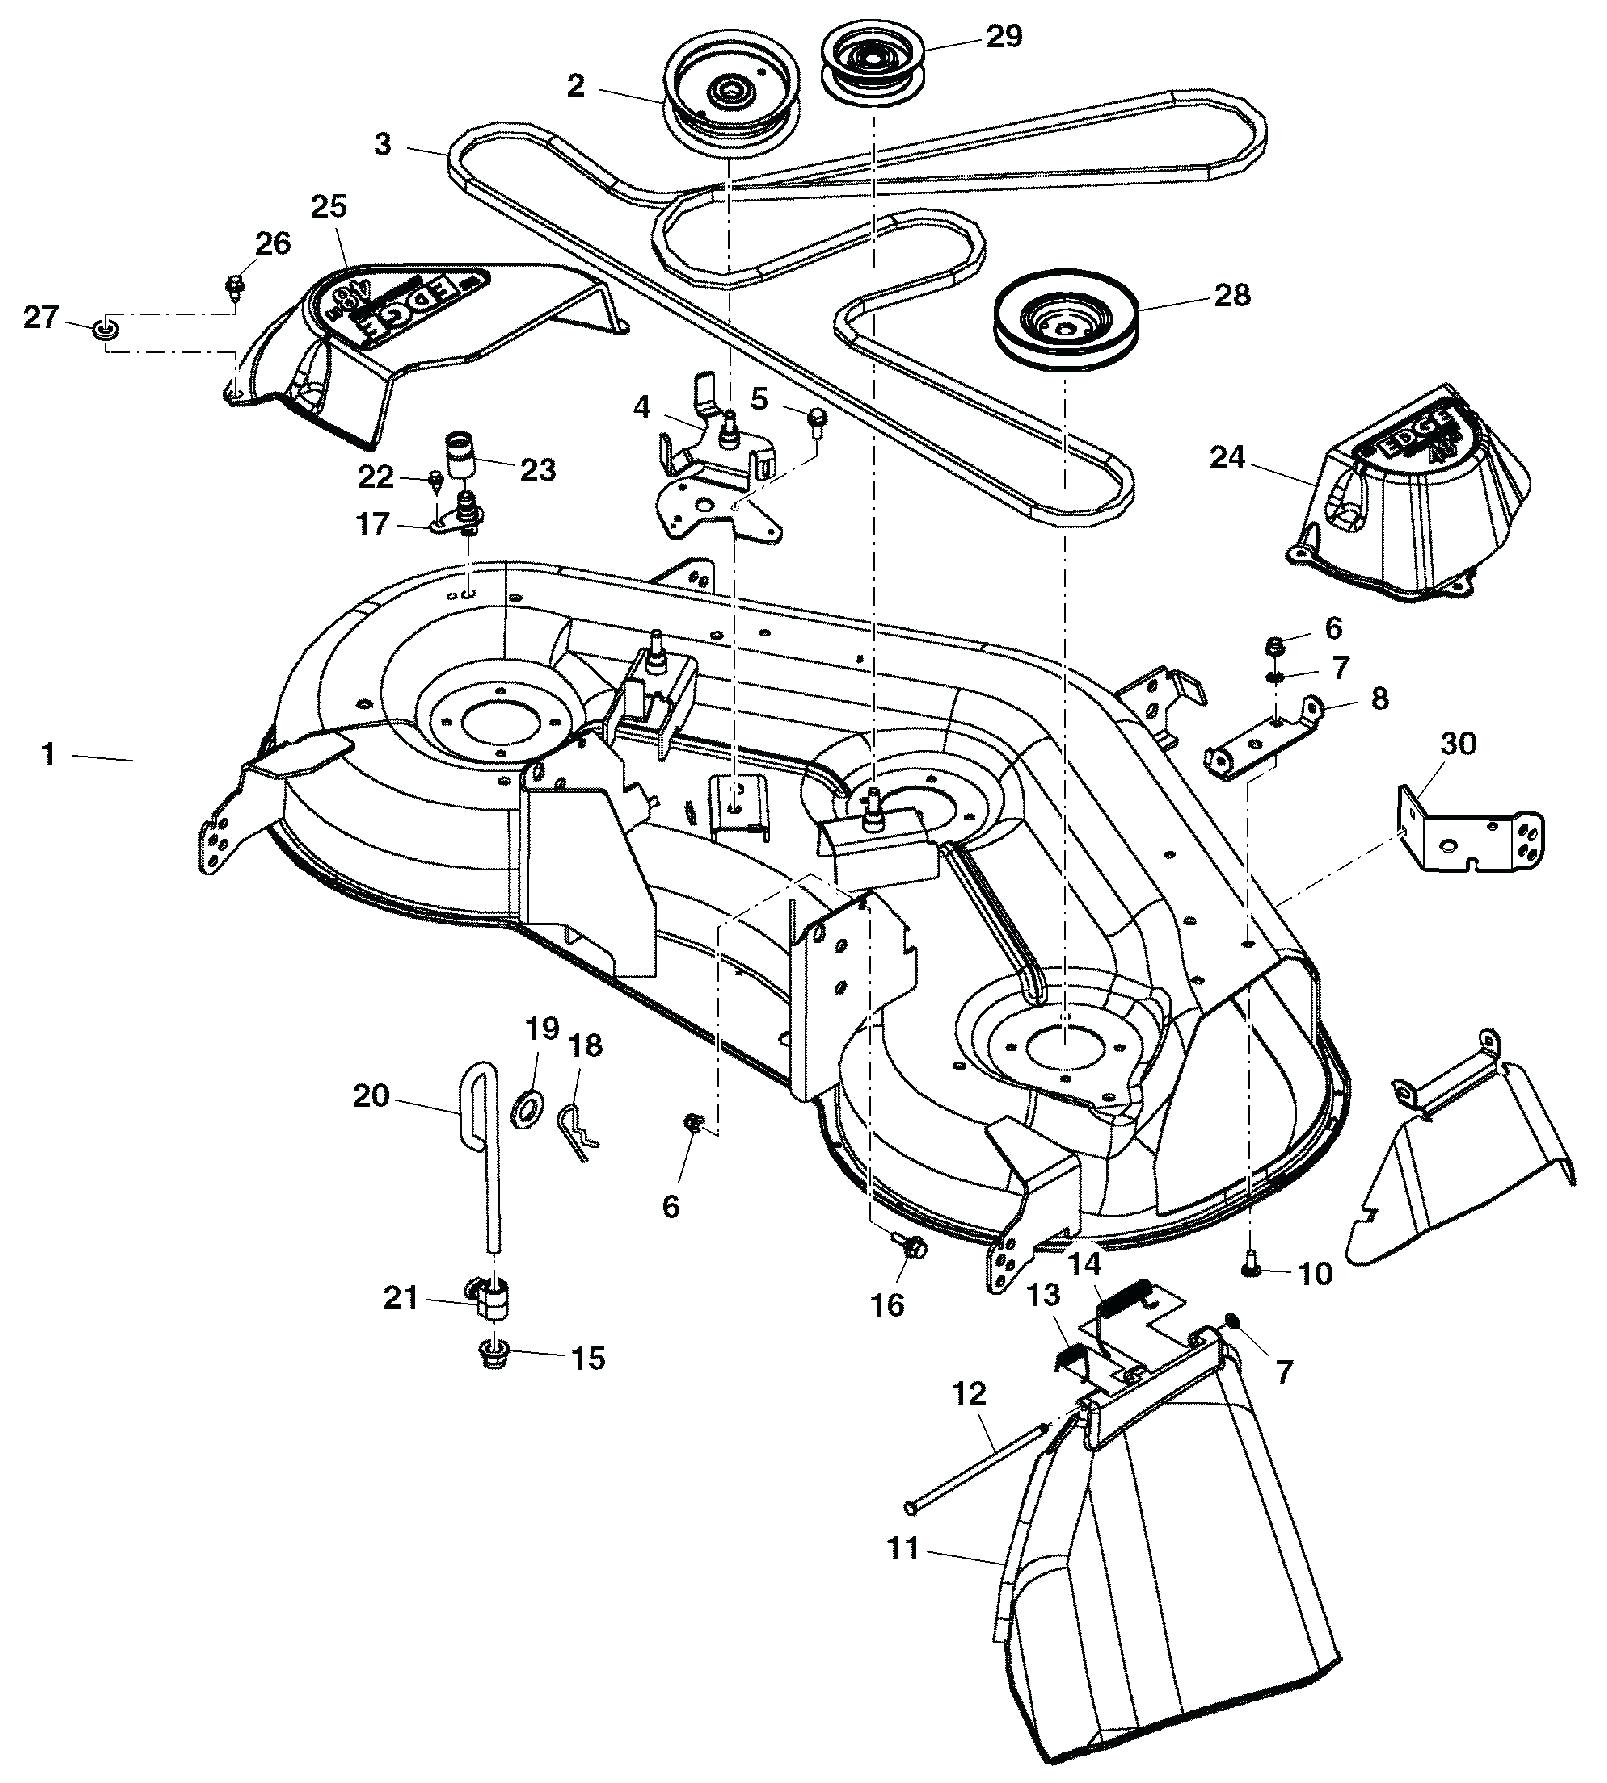 2013 honda cr v parts diagram html